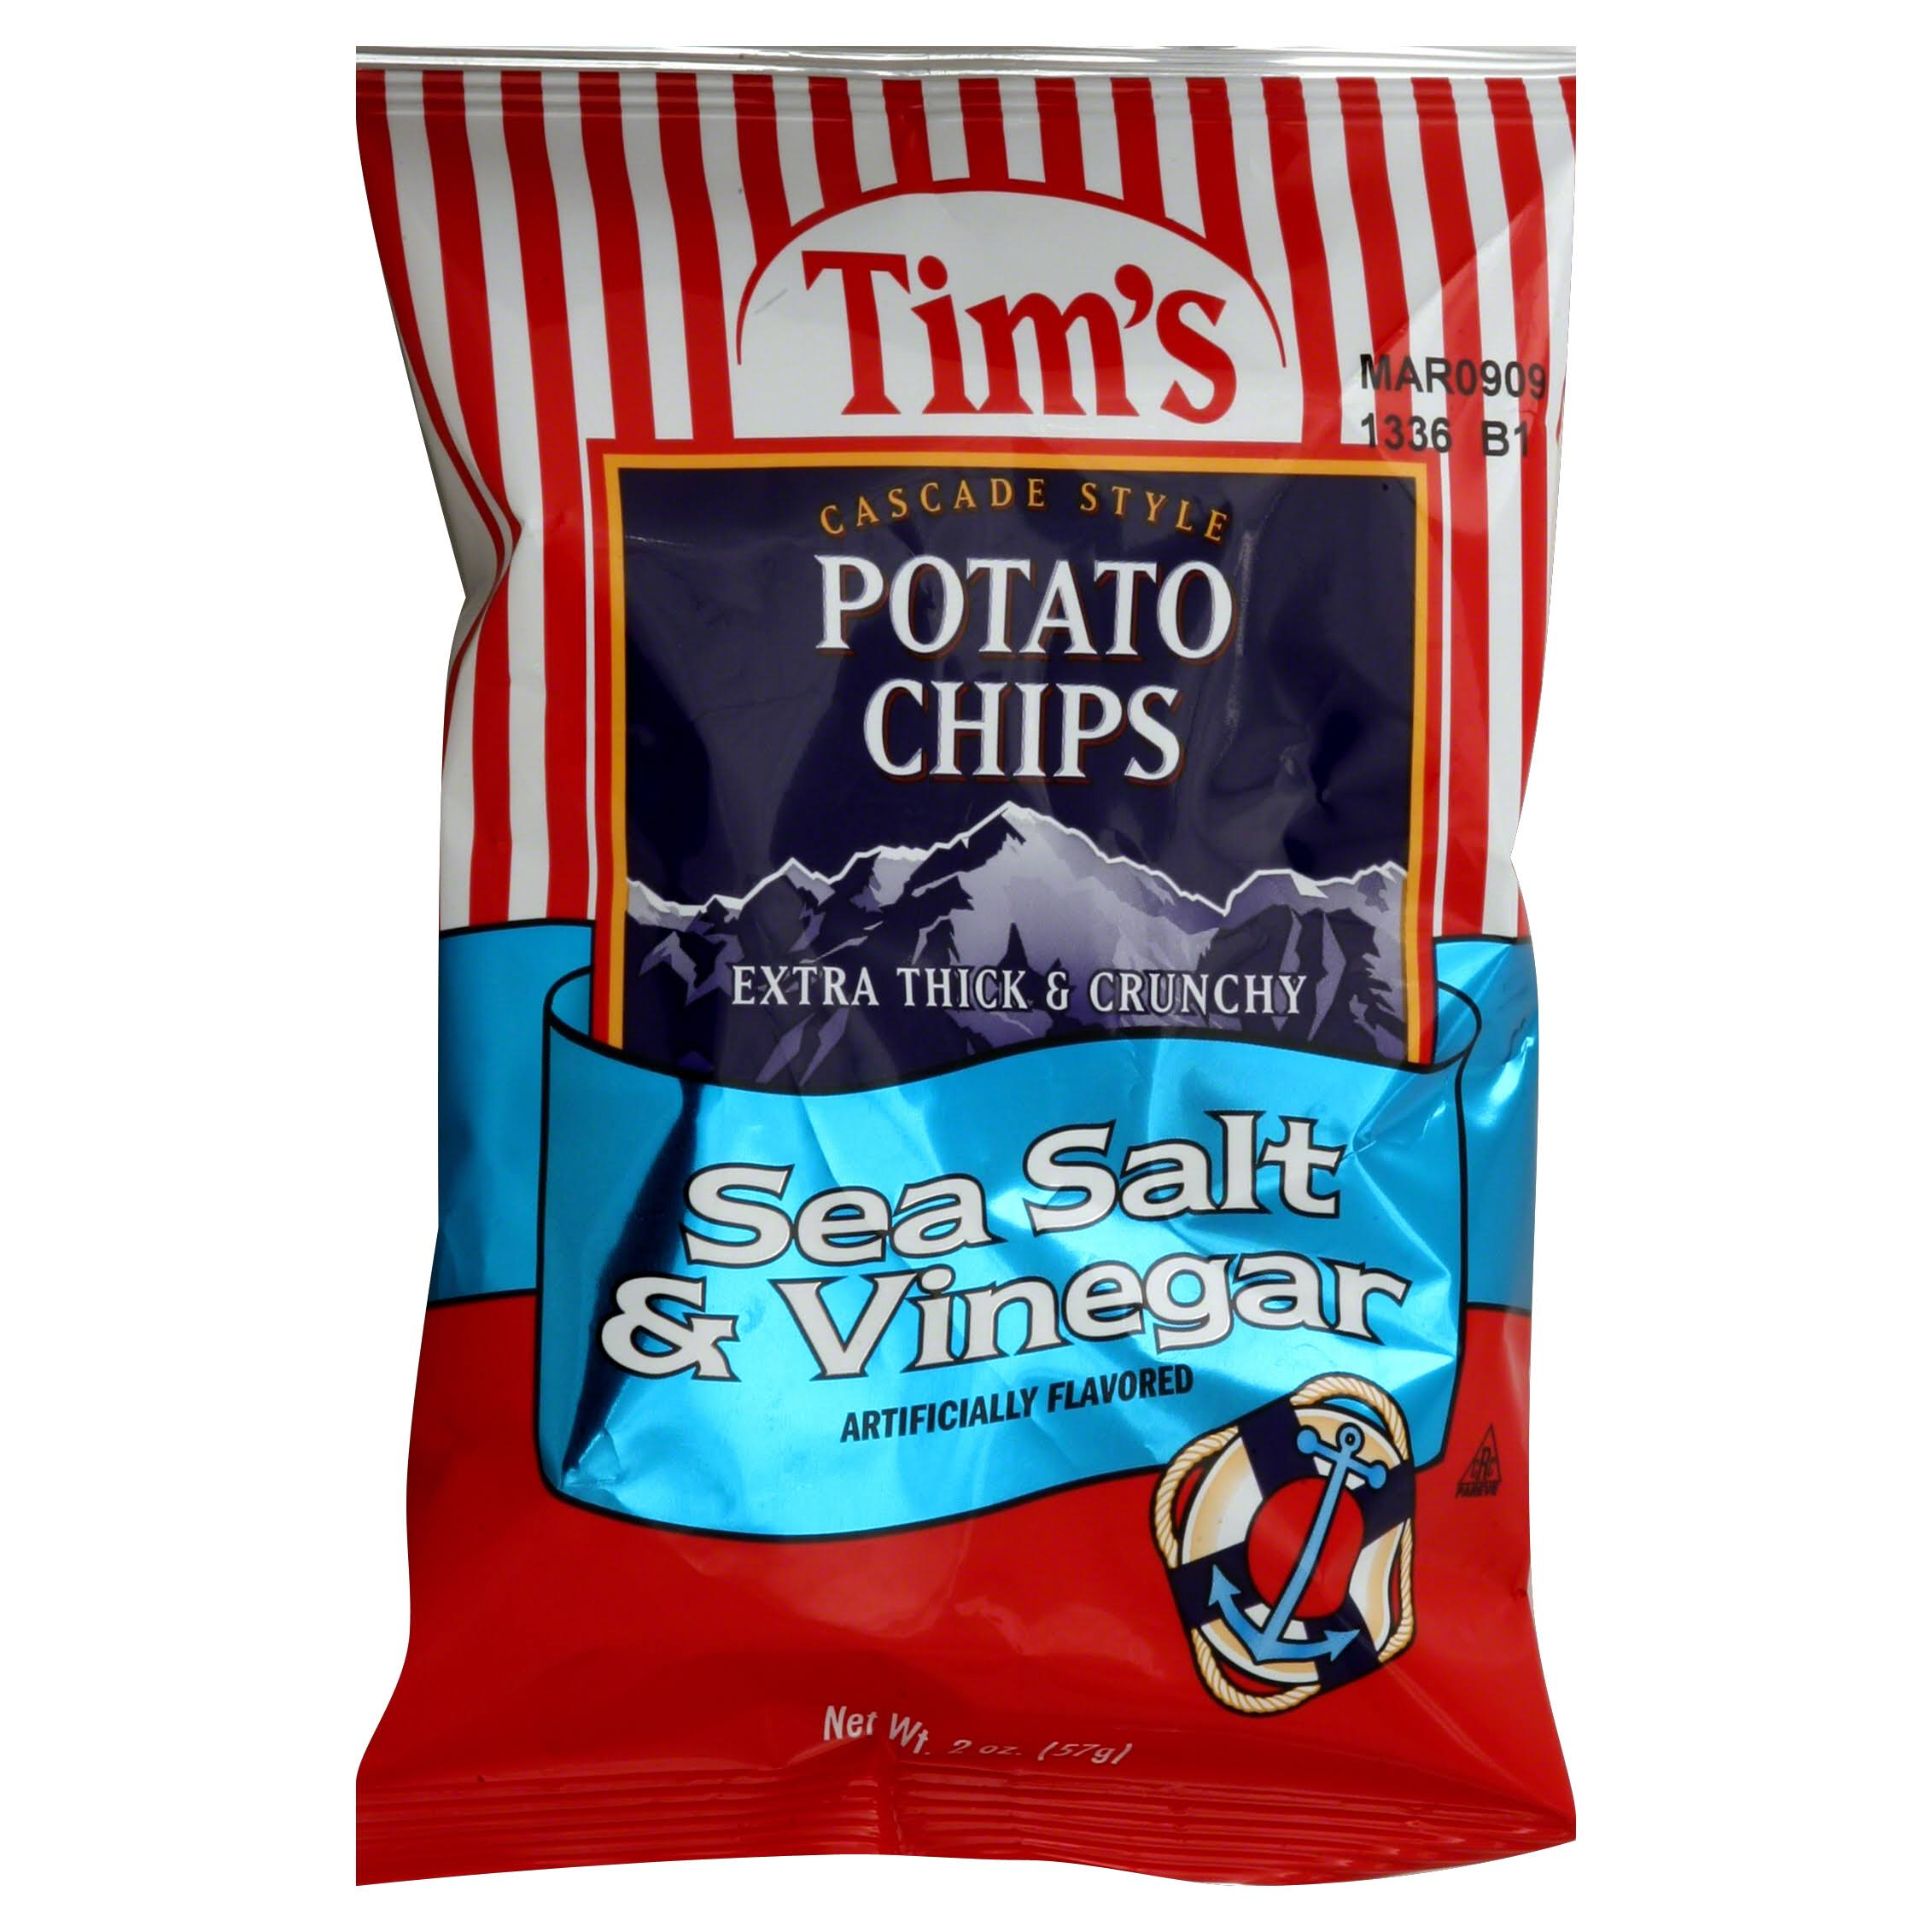 Tim's Cascade Style Potato Chips - Sea Salt & Vinegar